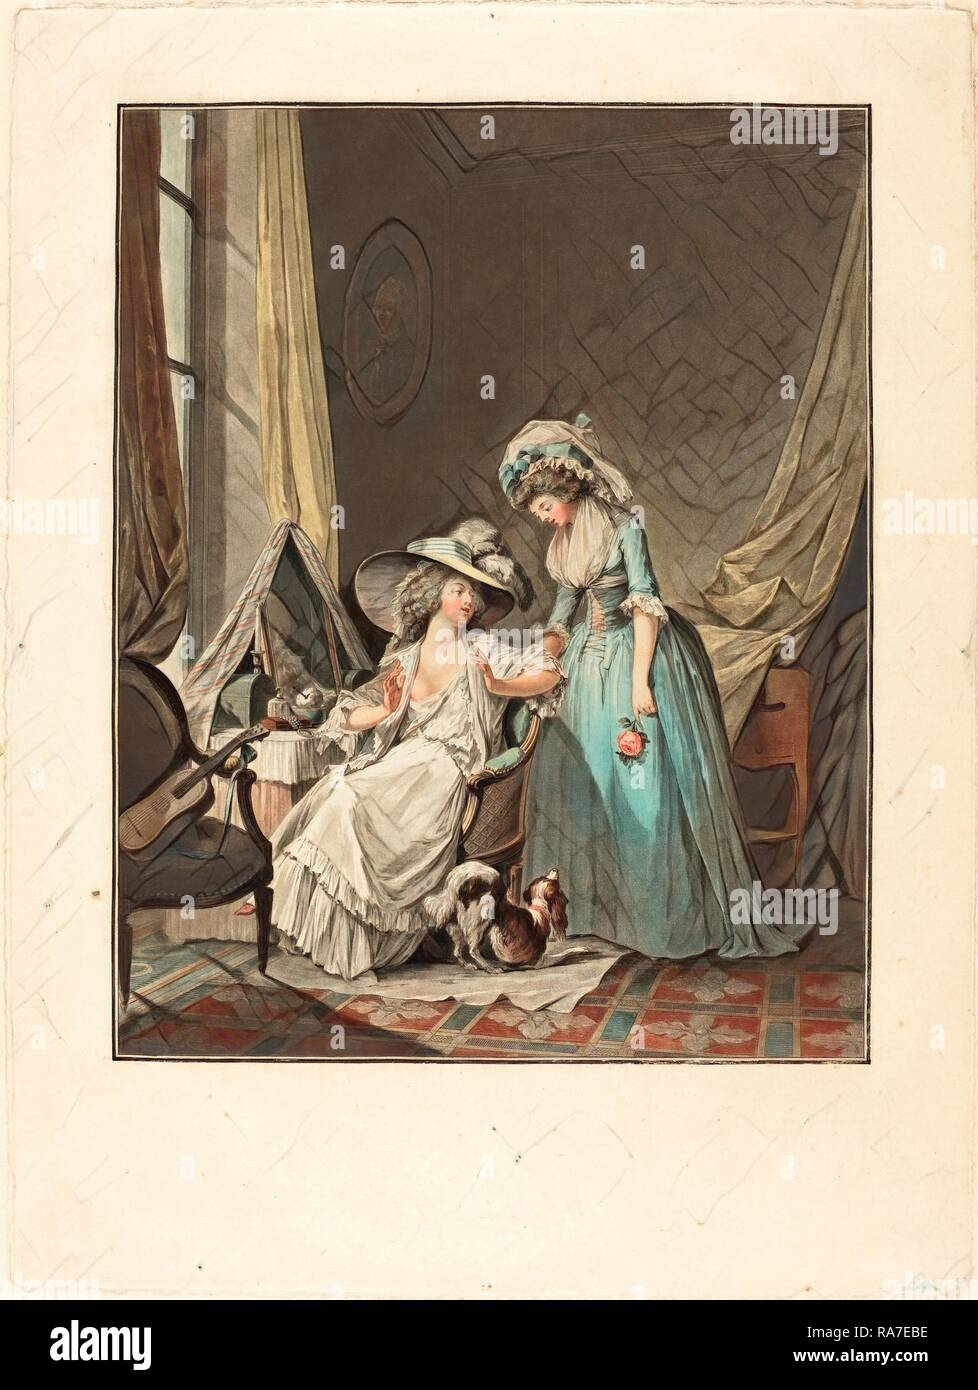 Jean-François Janinet after Nicolas Lavreince, French (1752-1814), L'aveu difficile (The Difficult Confession), 1787 reimagined Stock Photo